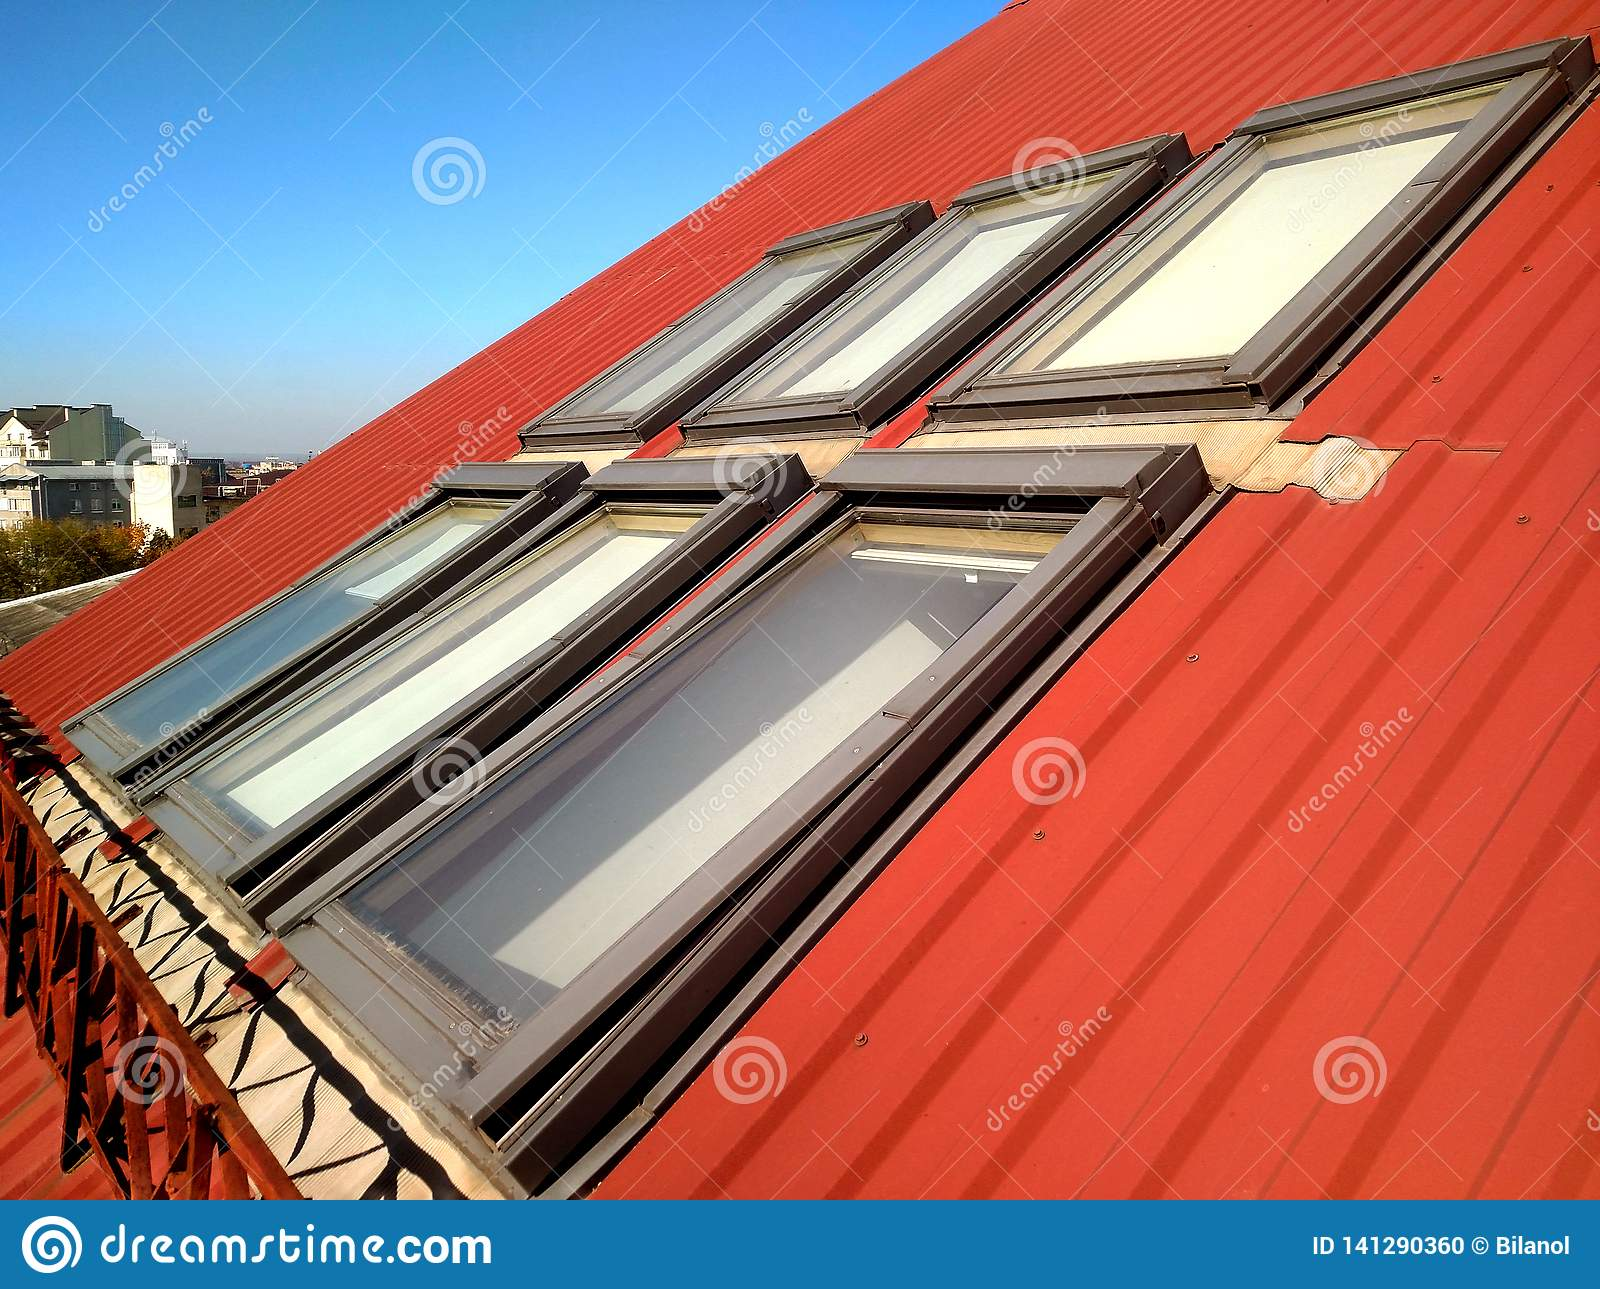 Red tiled house roof with attic windows. Roofing construction, window installation, modern architecture concept